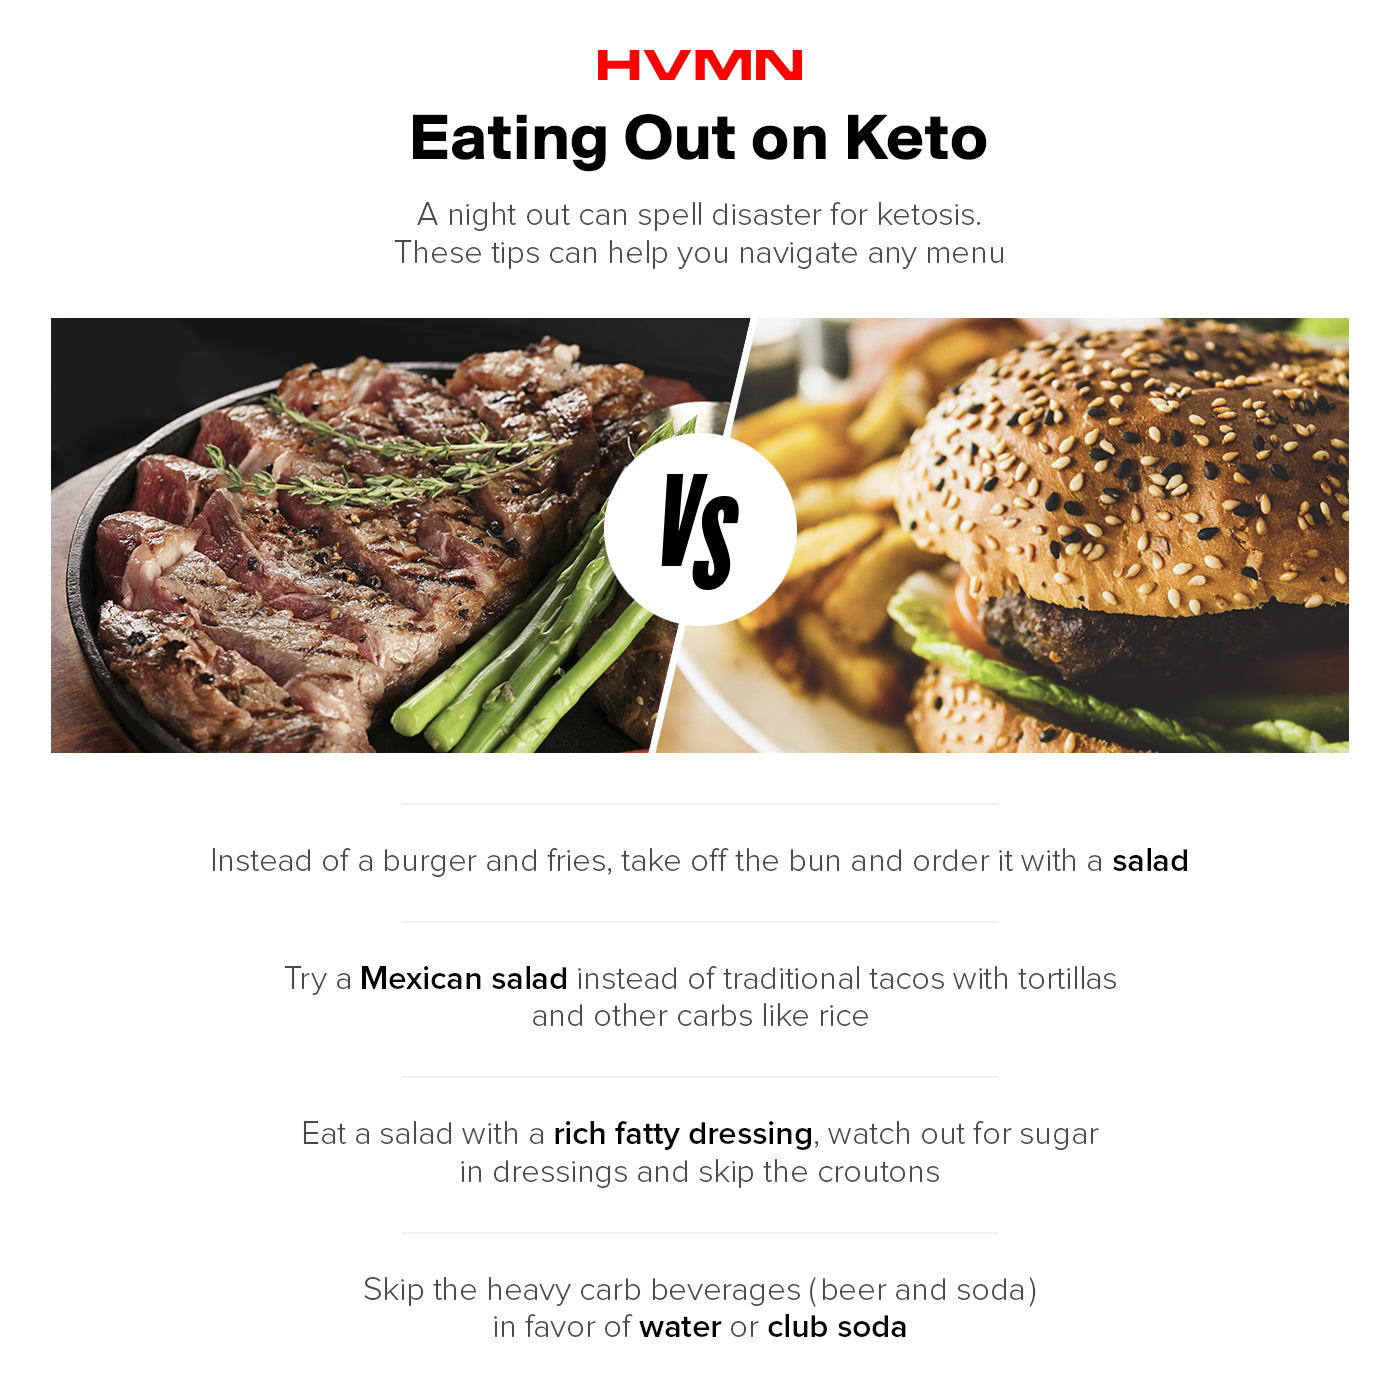 A steak next to a hamburger and fries, showing how to navigate a menu while on keto